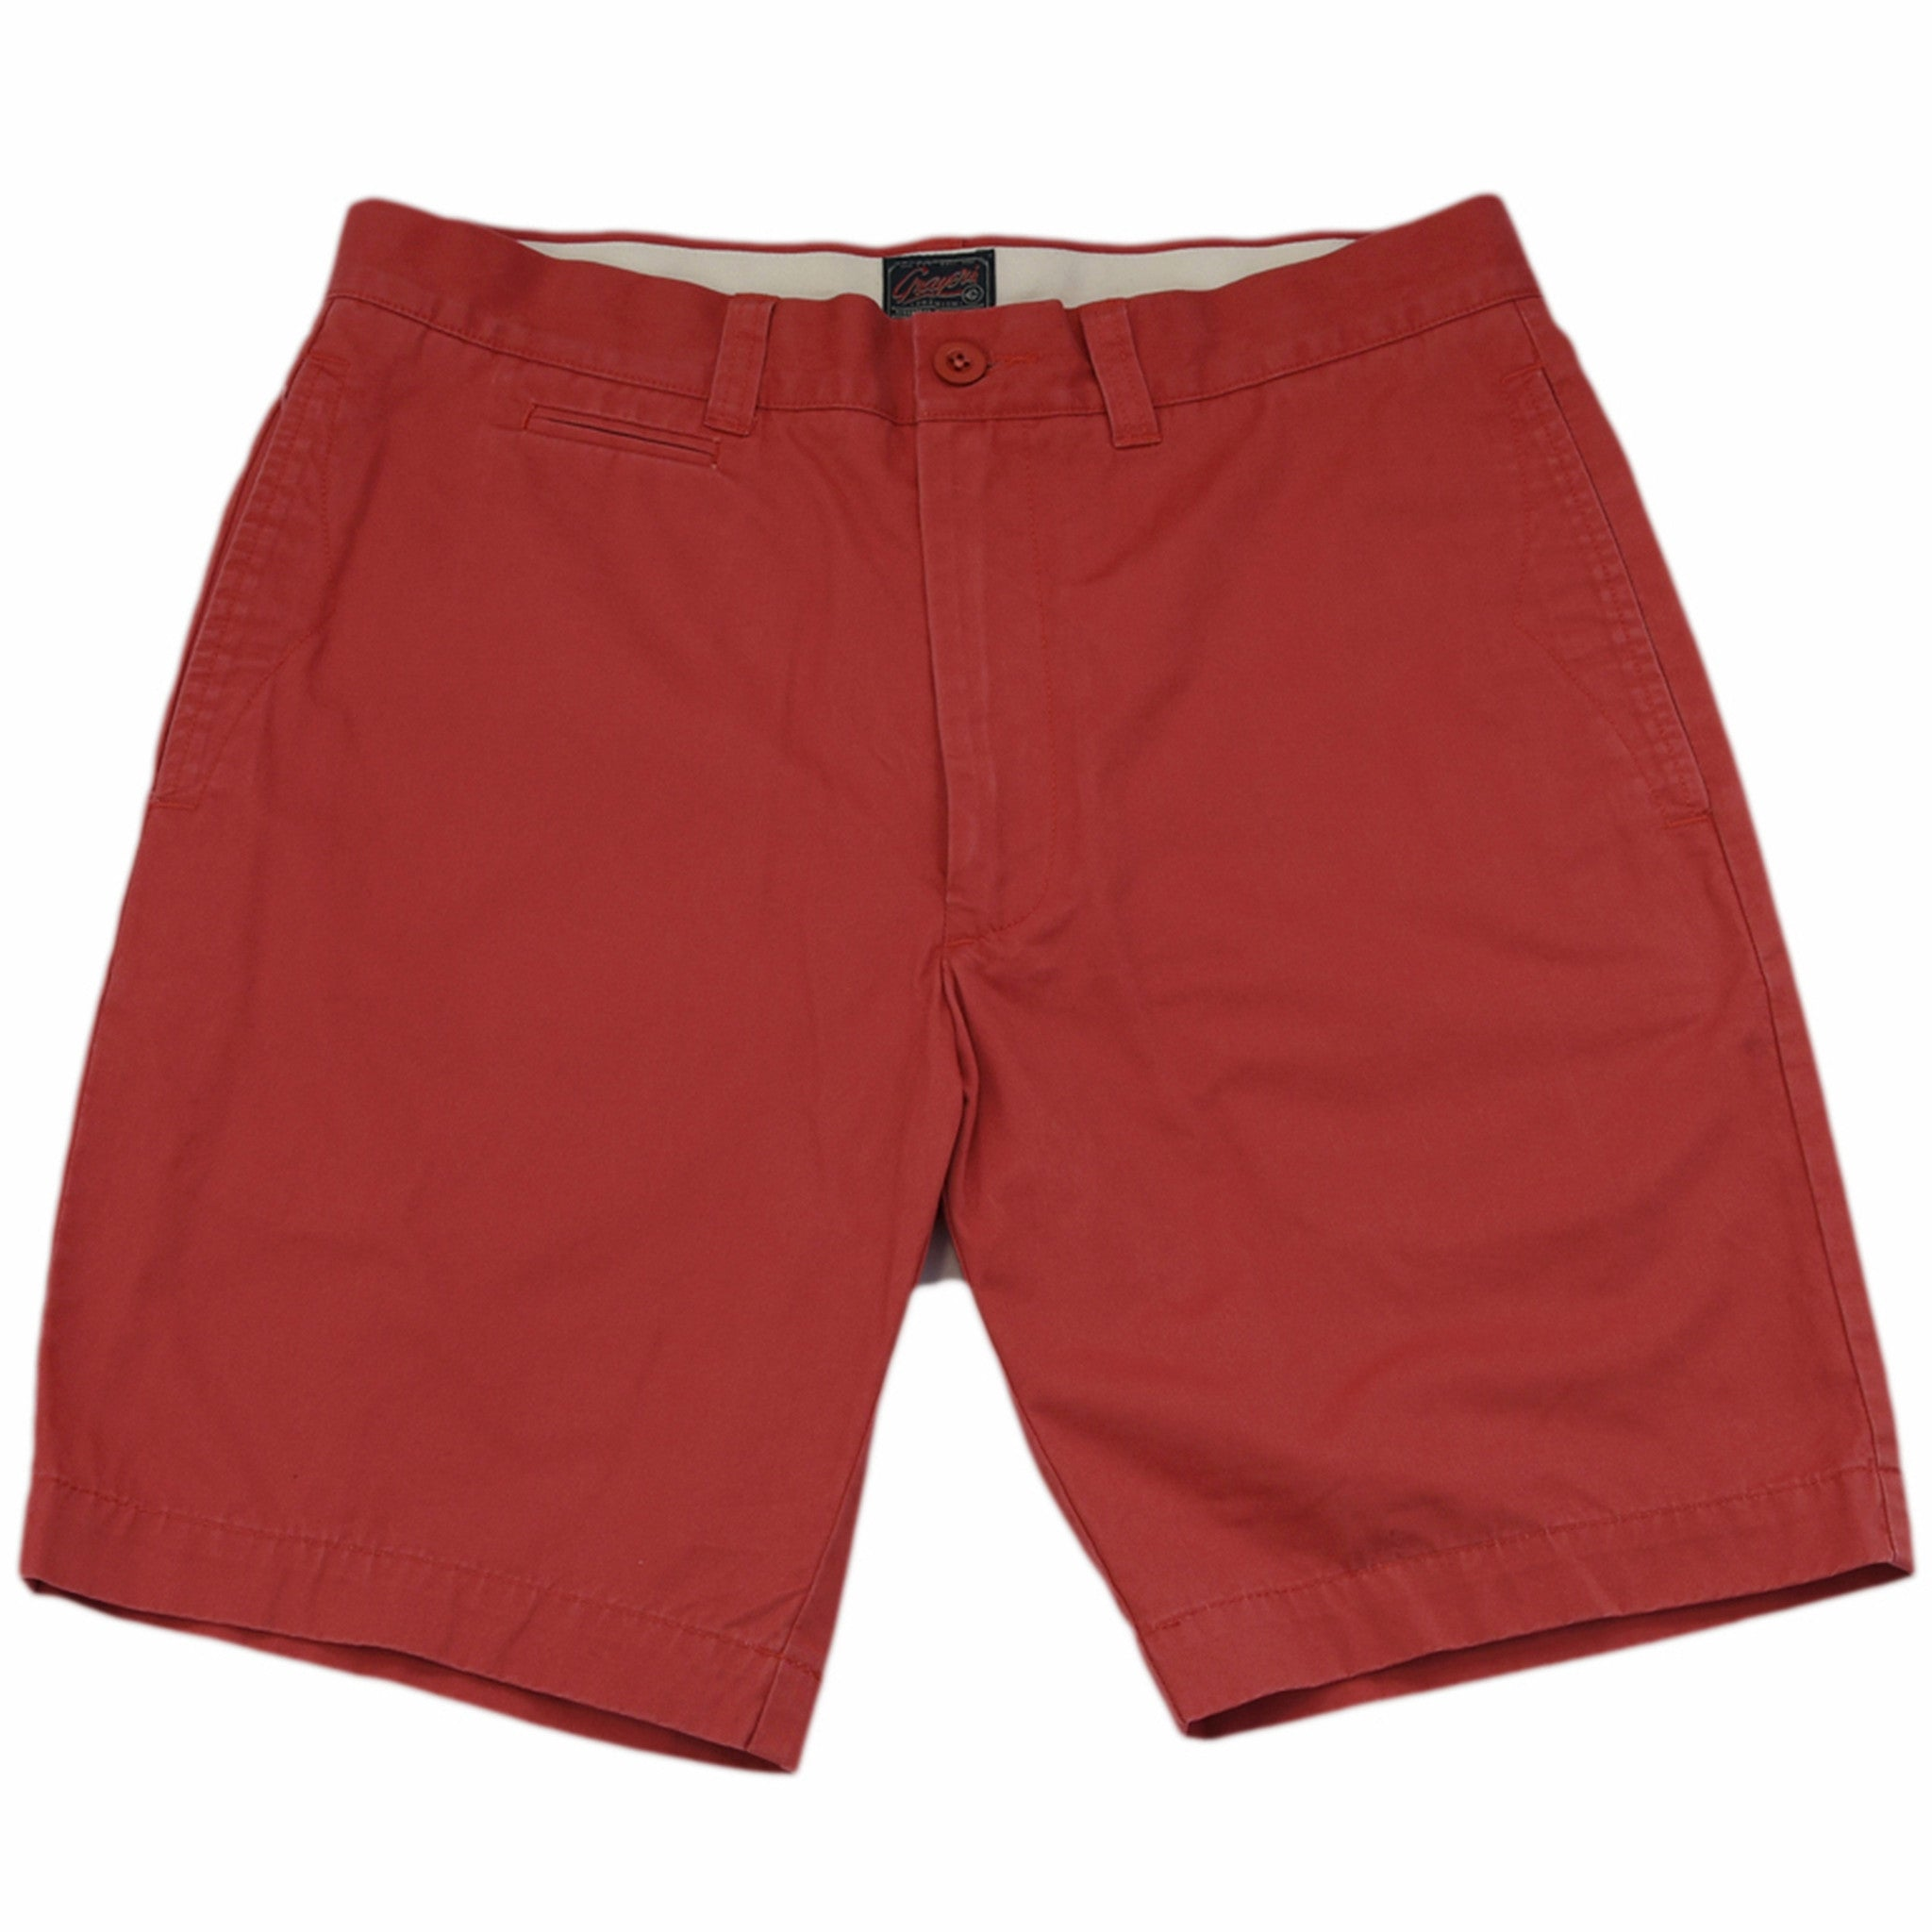 "9"" Newport Classic Club Short - Red"